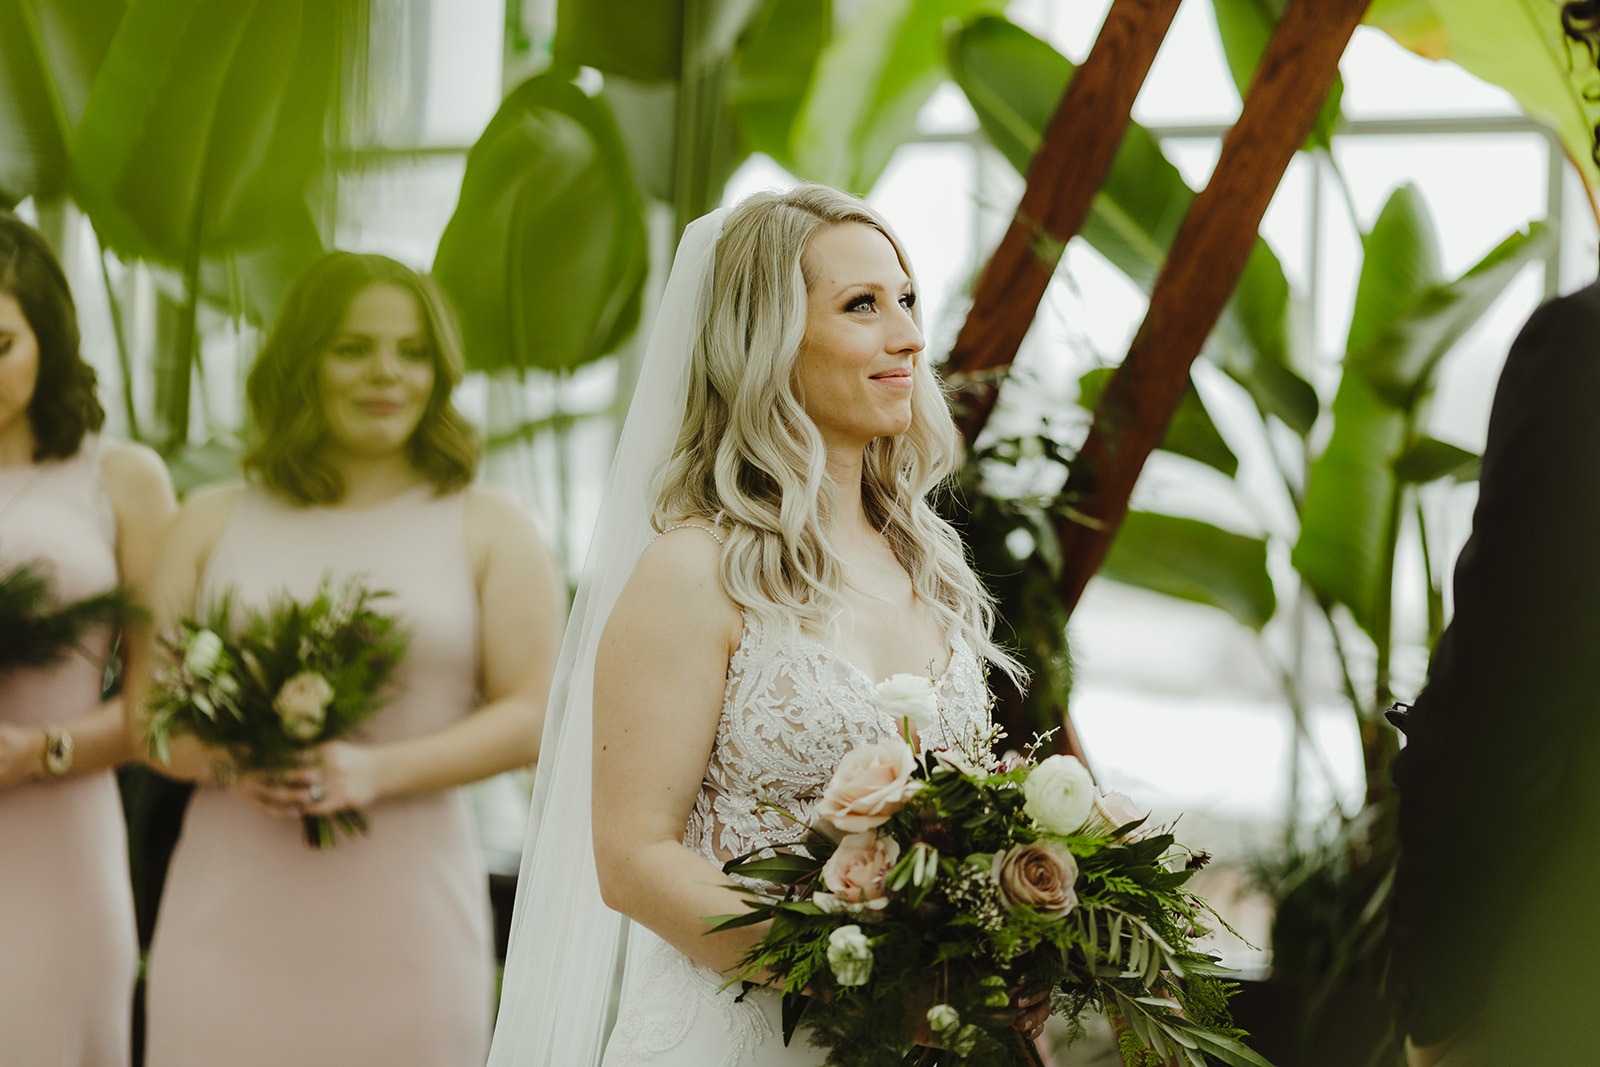 A bride smiling during her wedding ceremony in Grand Rapids, Michigan